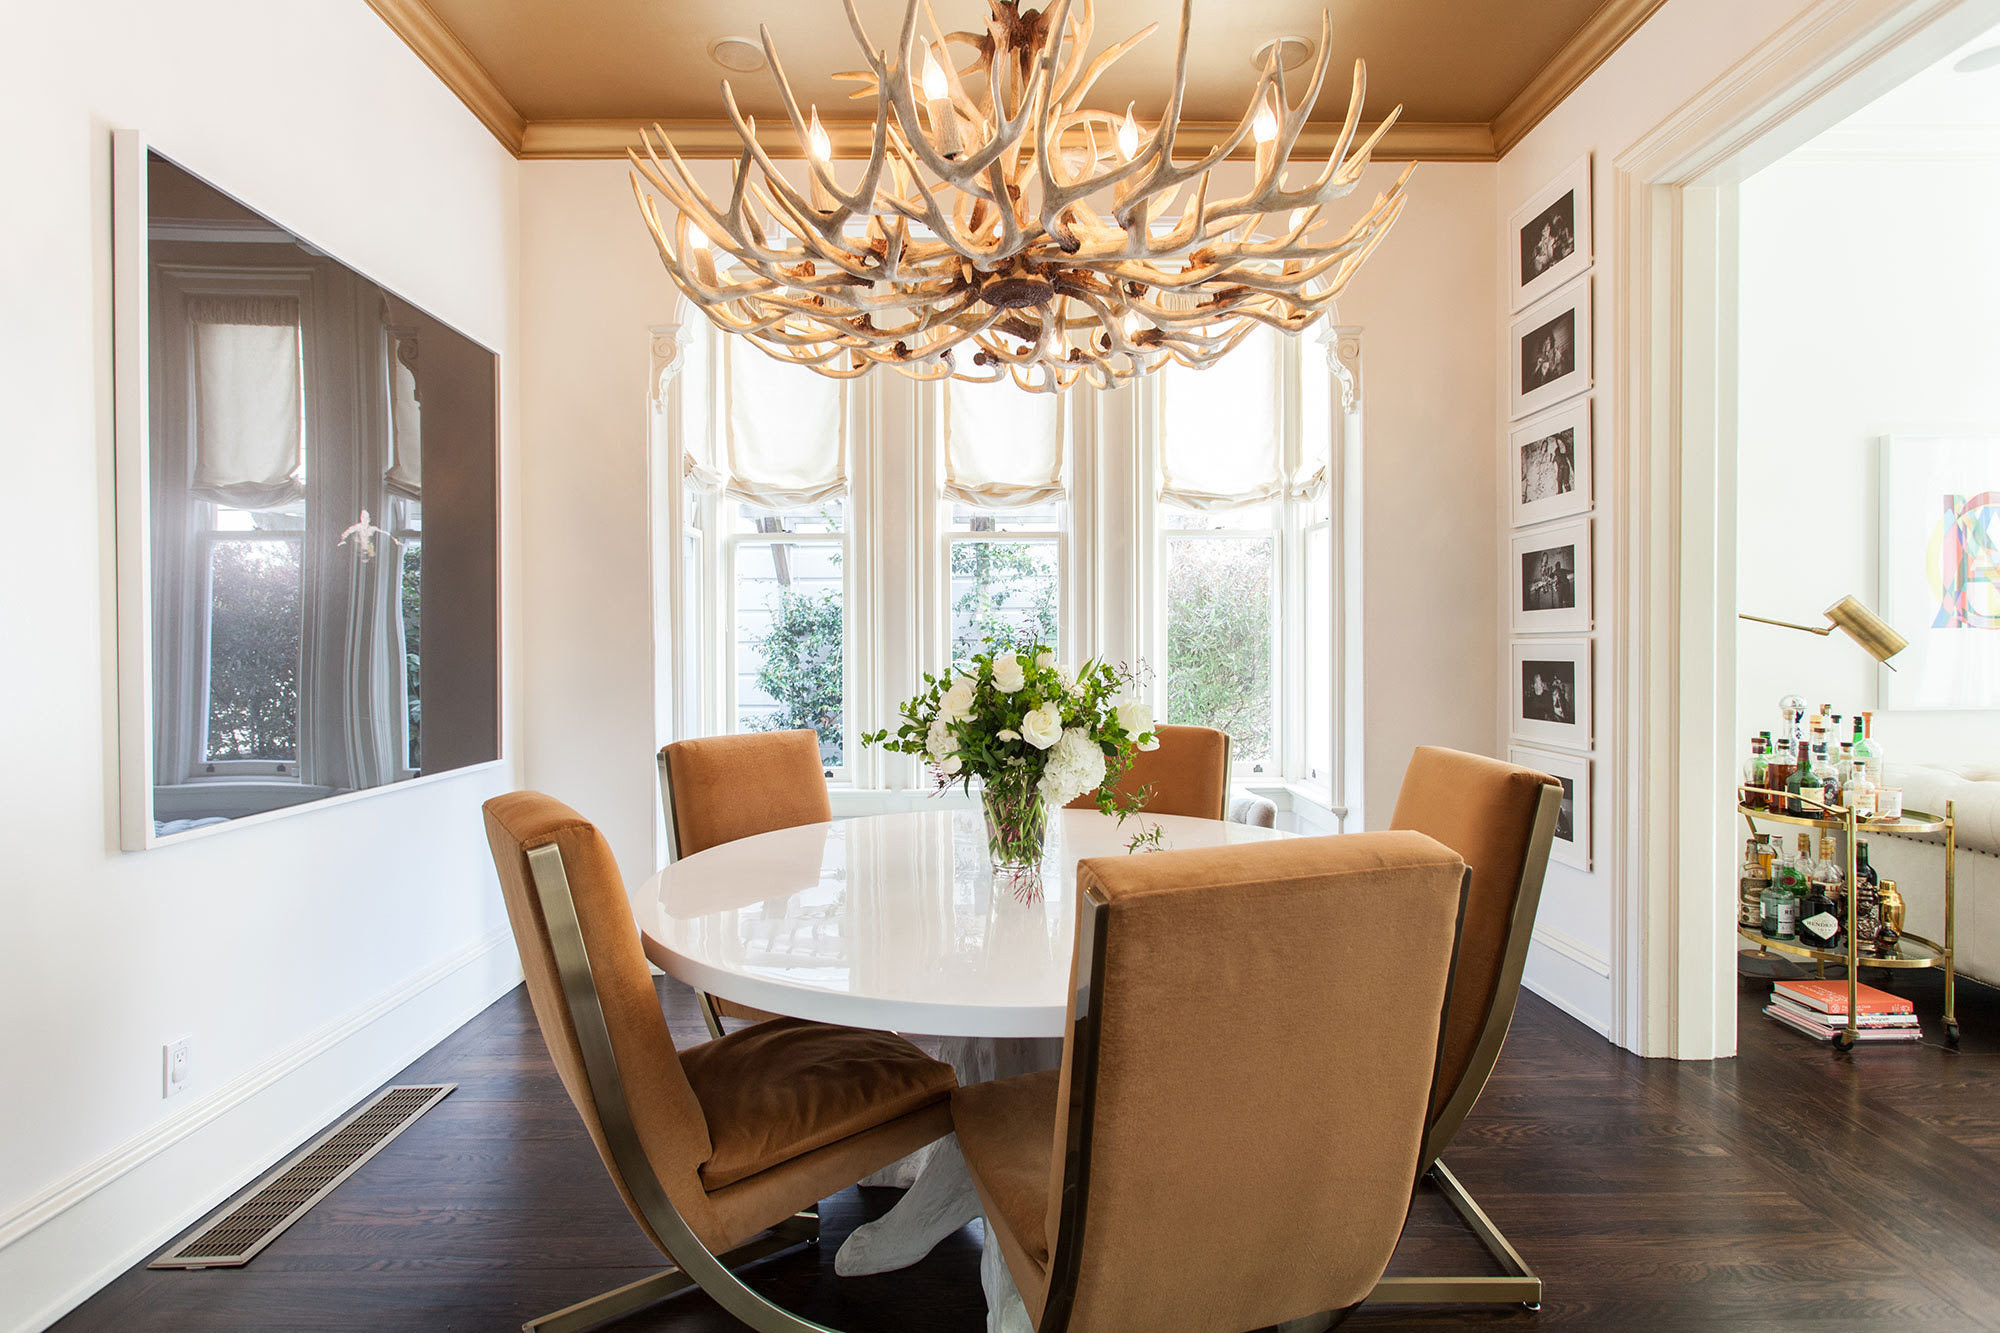 A Family Friendly Victorian House That Blends Warmth And